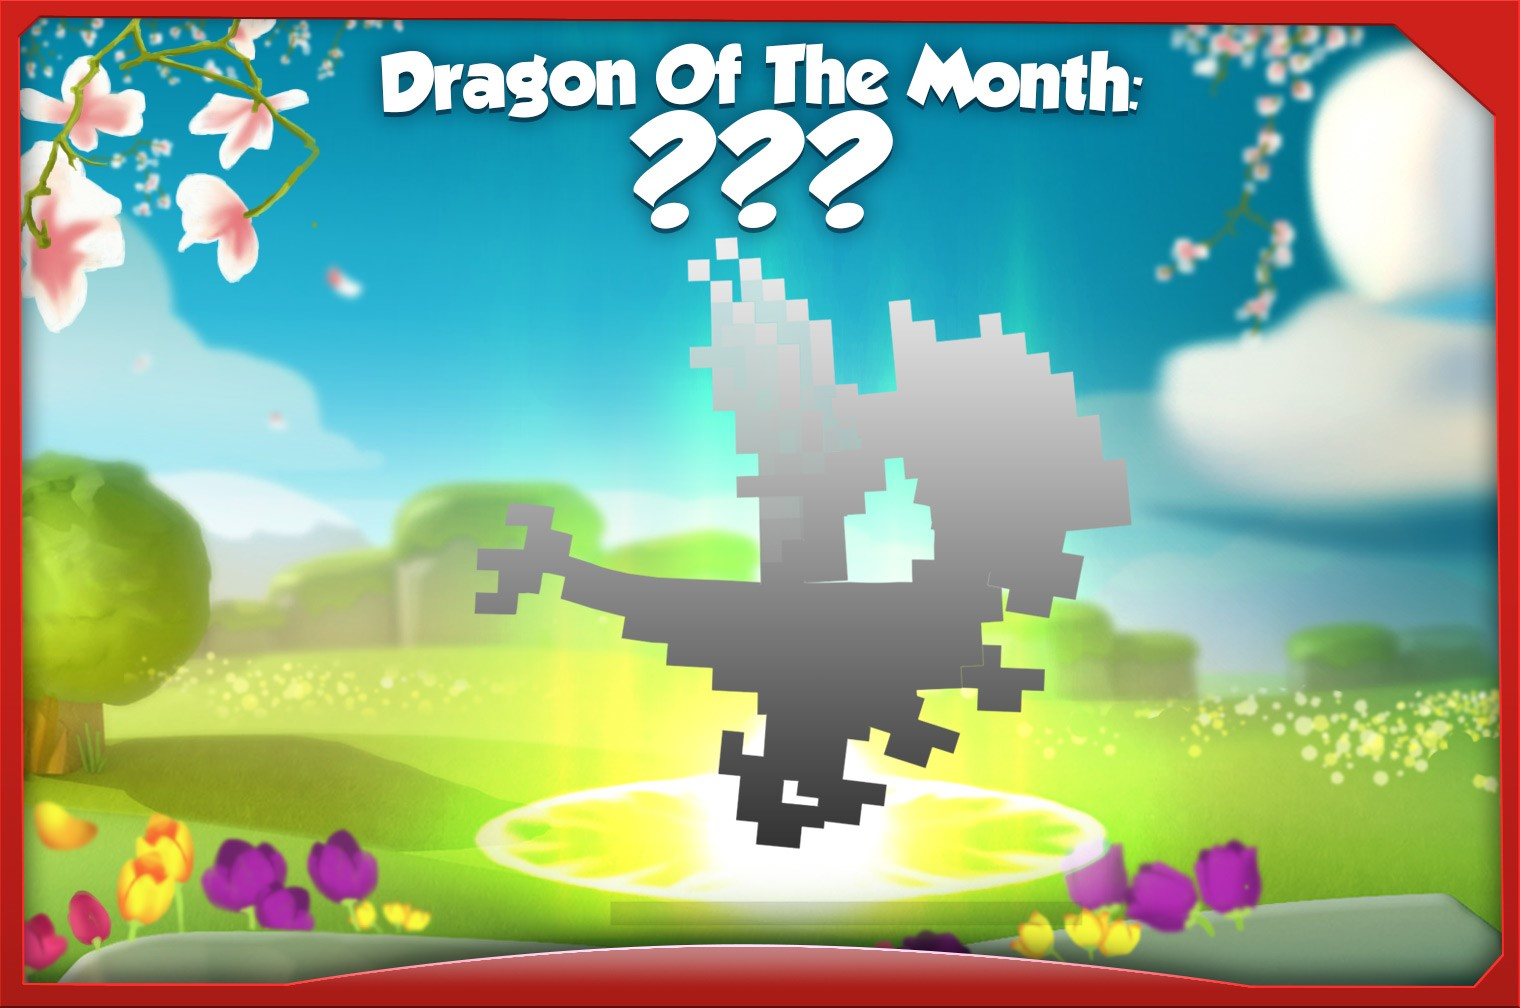 march-dragon-of-the-month-teaser